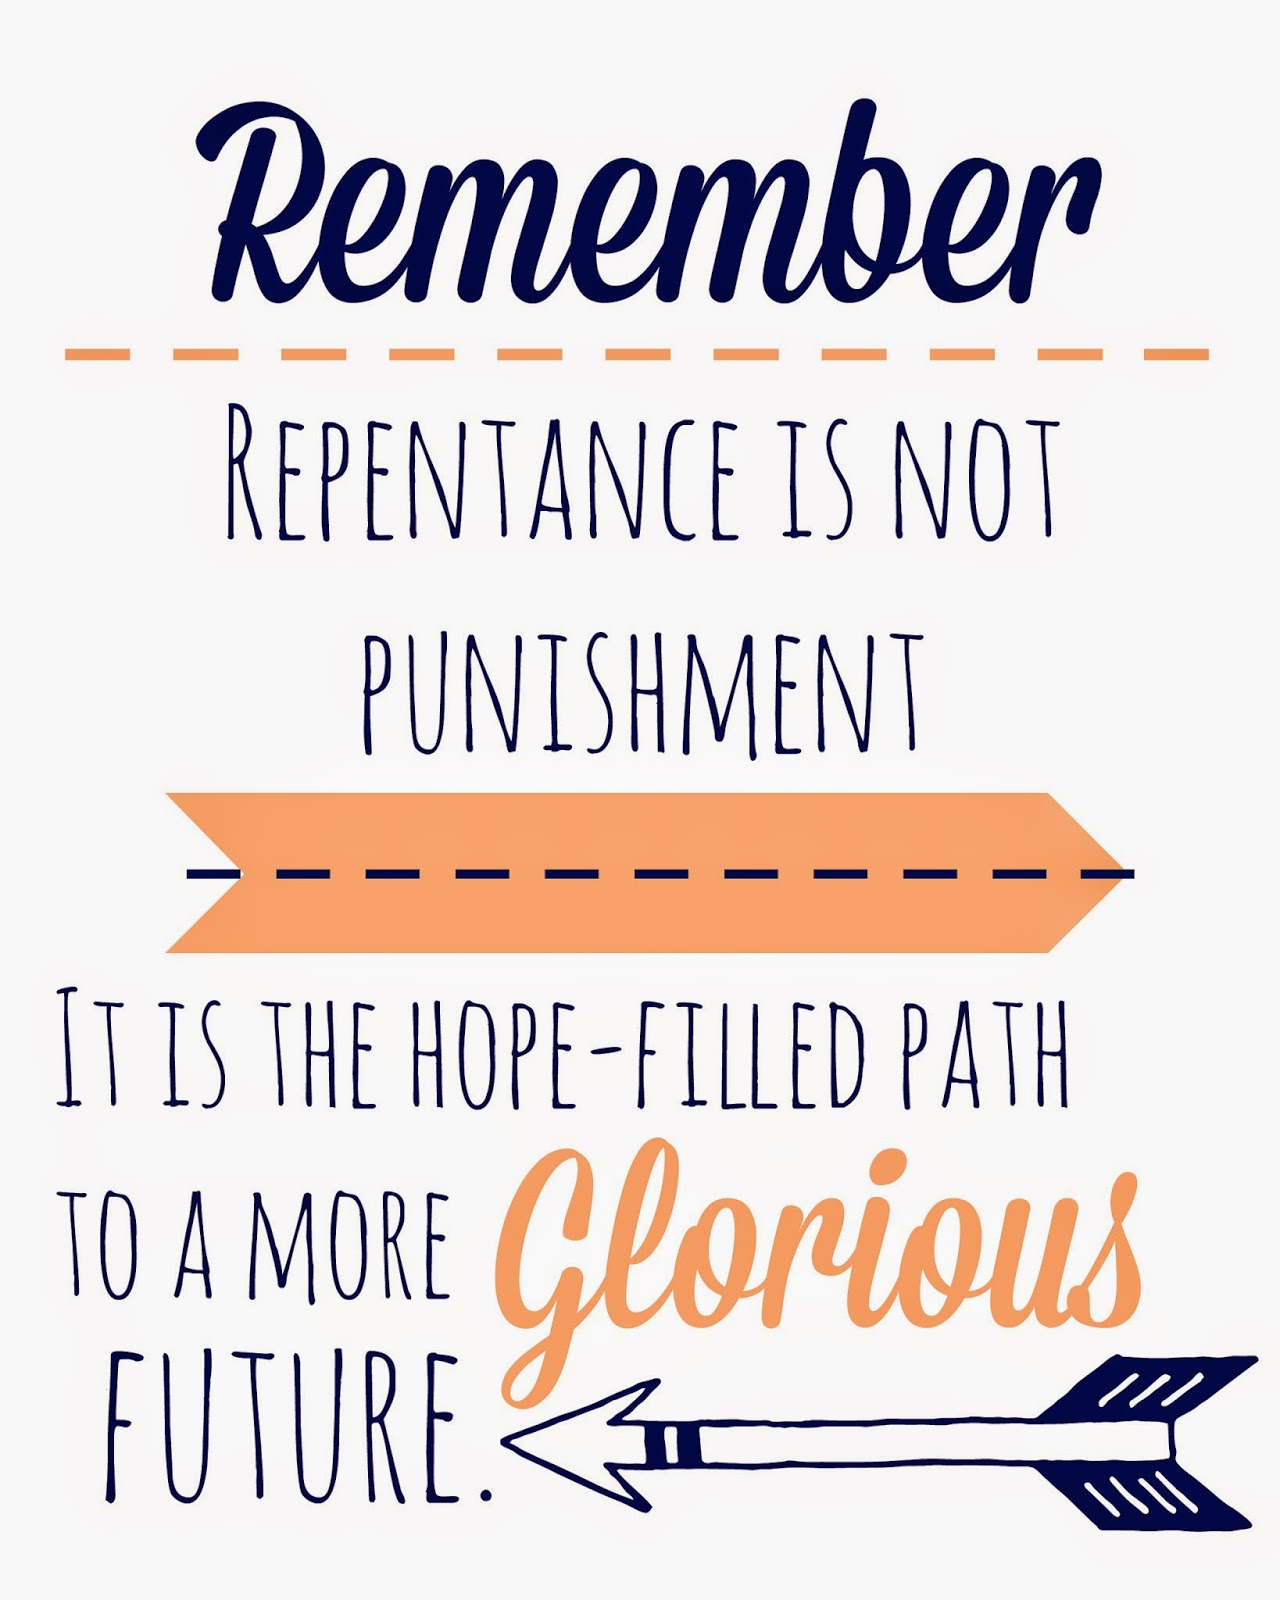 Lds Quotes On Family Home Evening: Blue Skies Ahead: Repentance Family Home Evening {Alma The ...